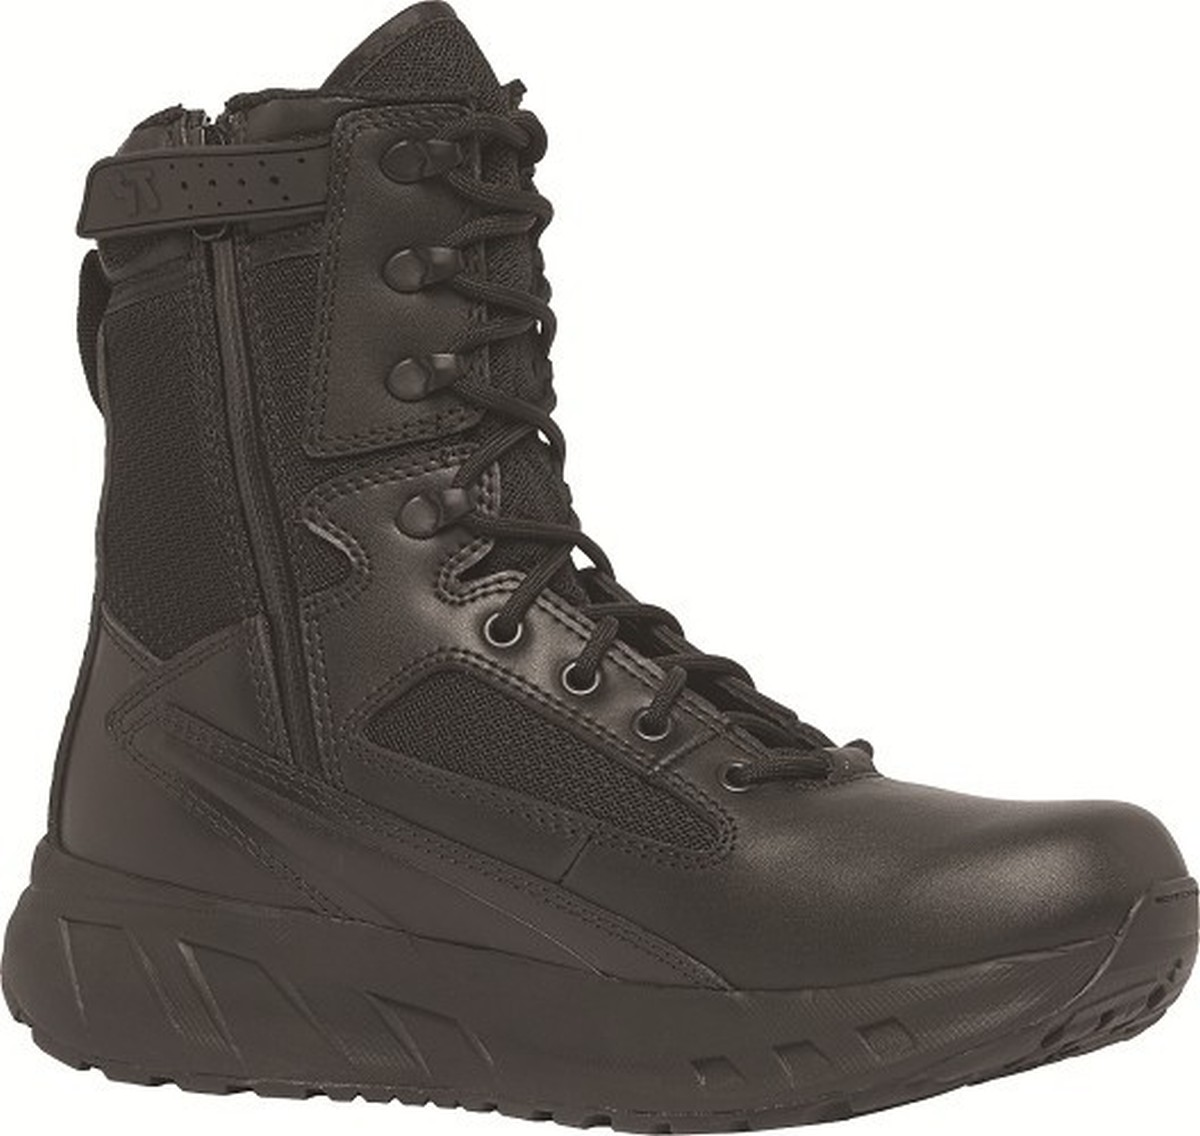 Maximalist Waterproof Tactical Boot-Belleville Shoe